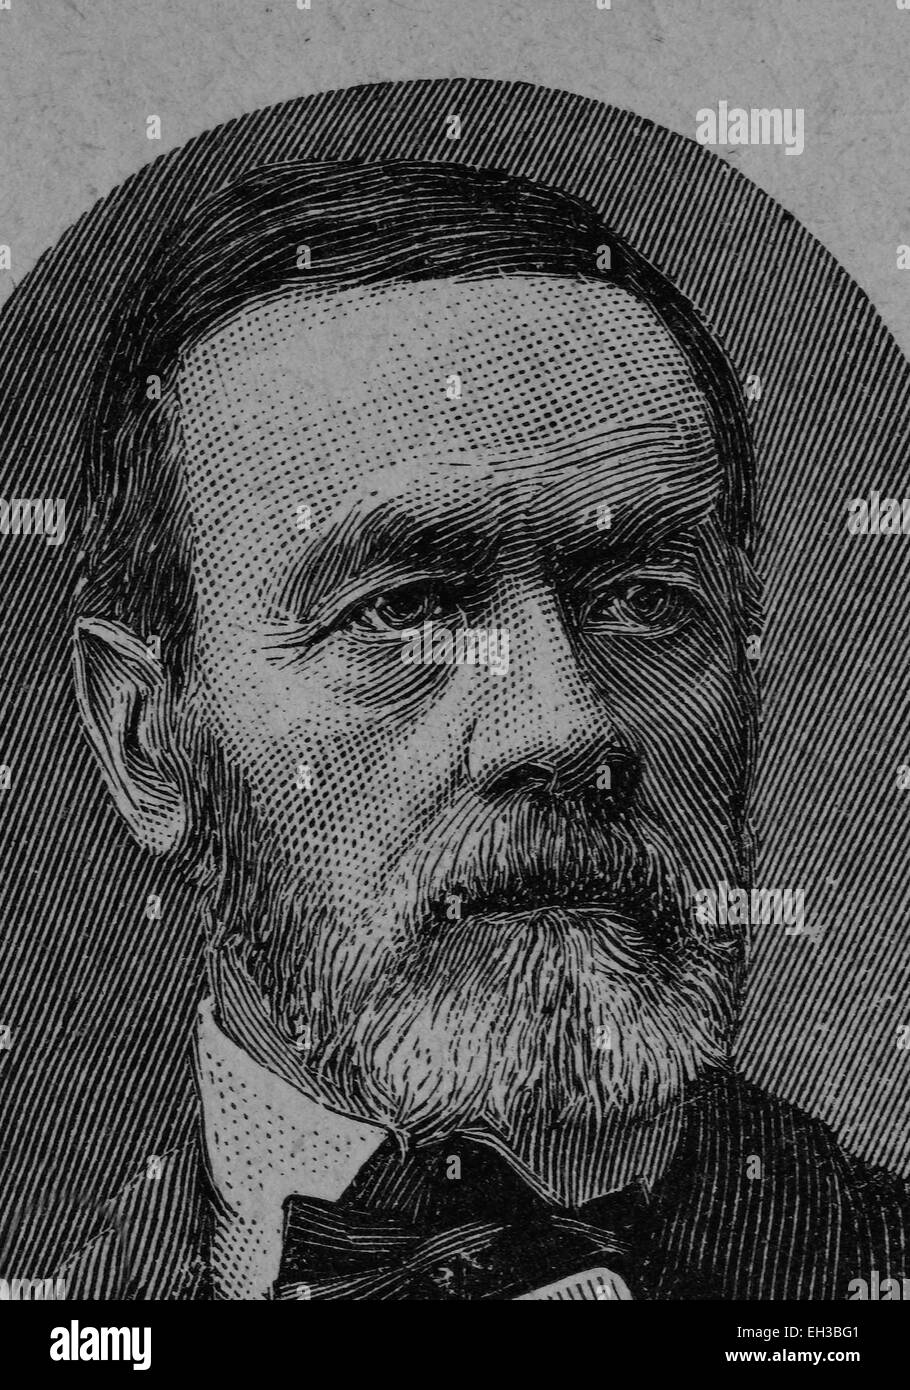 August Prinzinger, 1811 - 1899, member of the Frankfurt Parliament, wood engraving, about 1880 - Stock Image